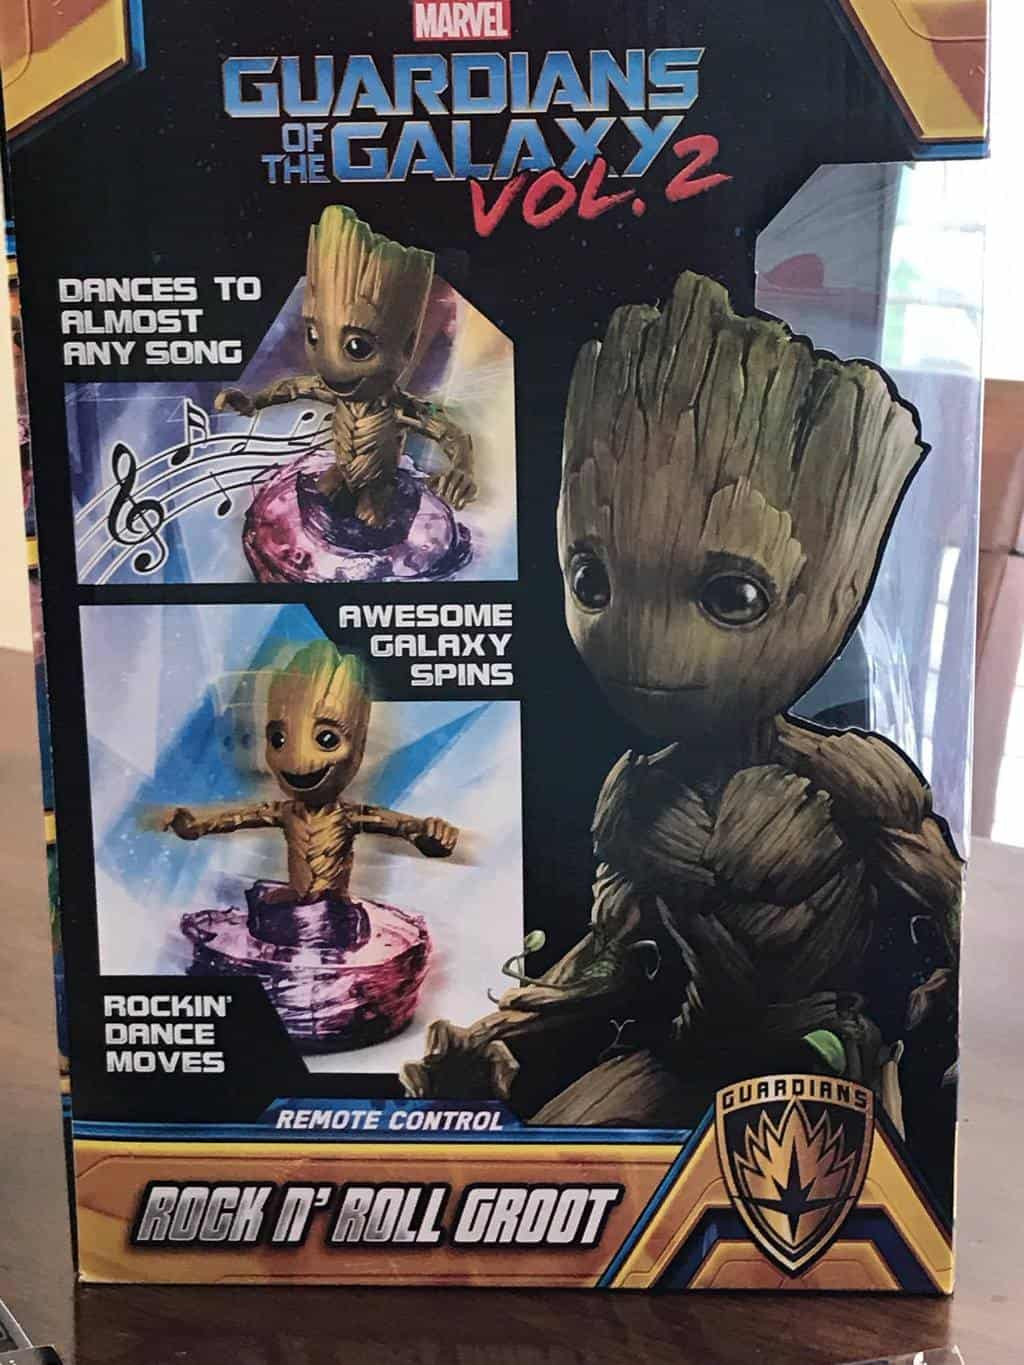 Groot Toy, Guardians of the Galaxy Vol 2